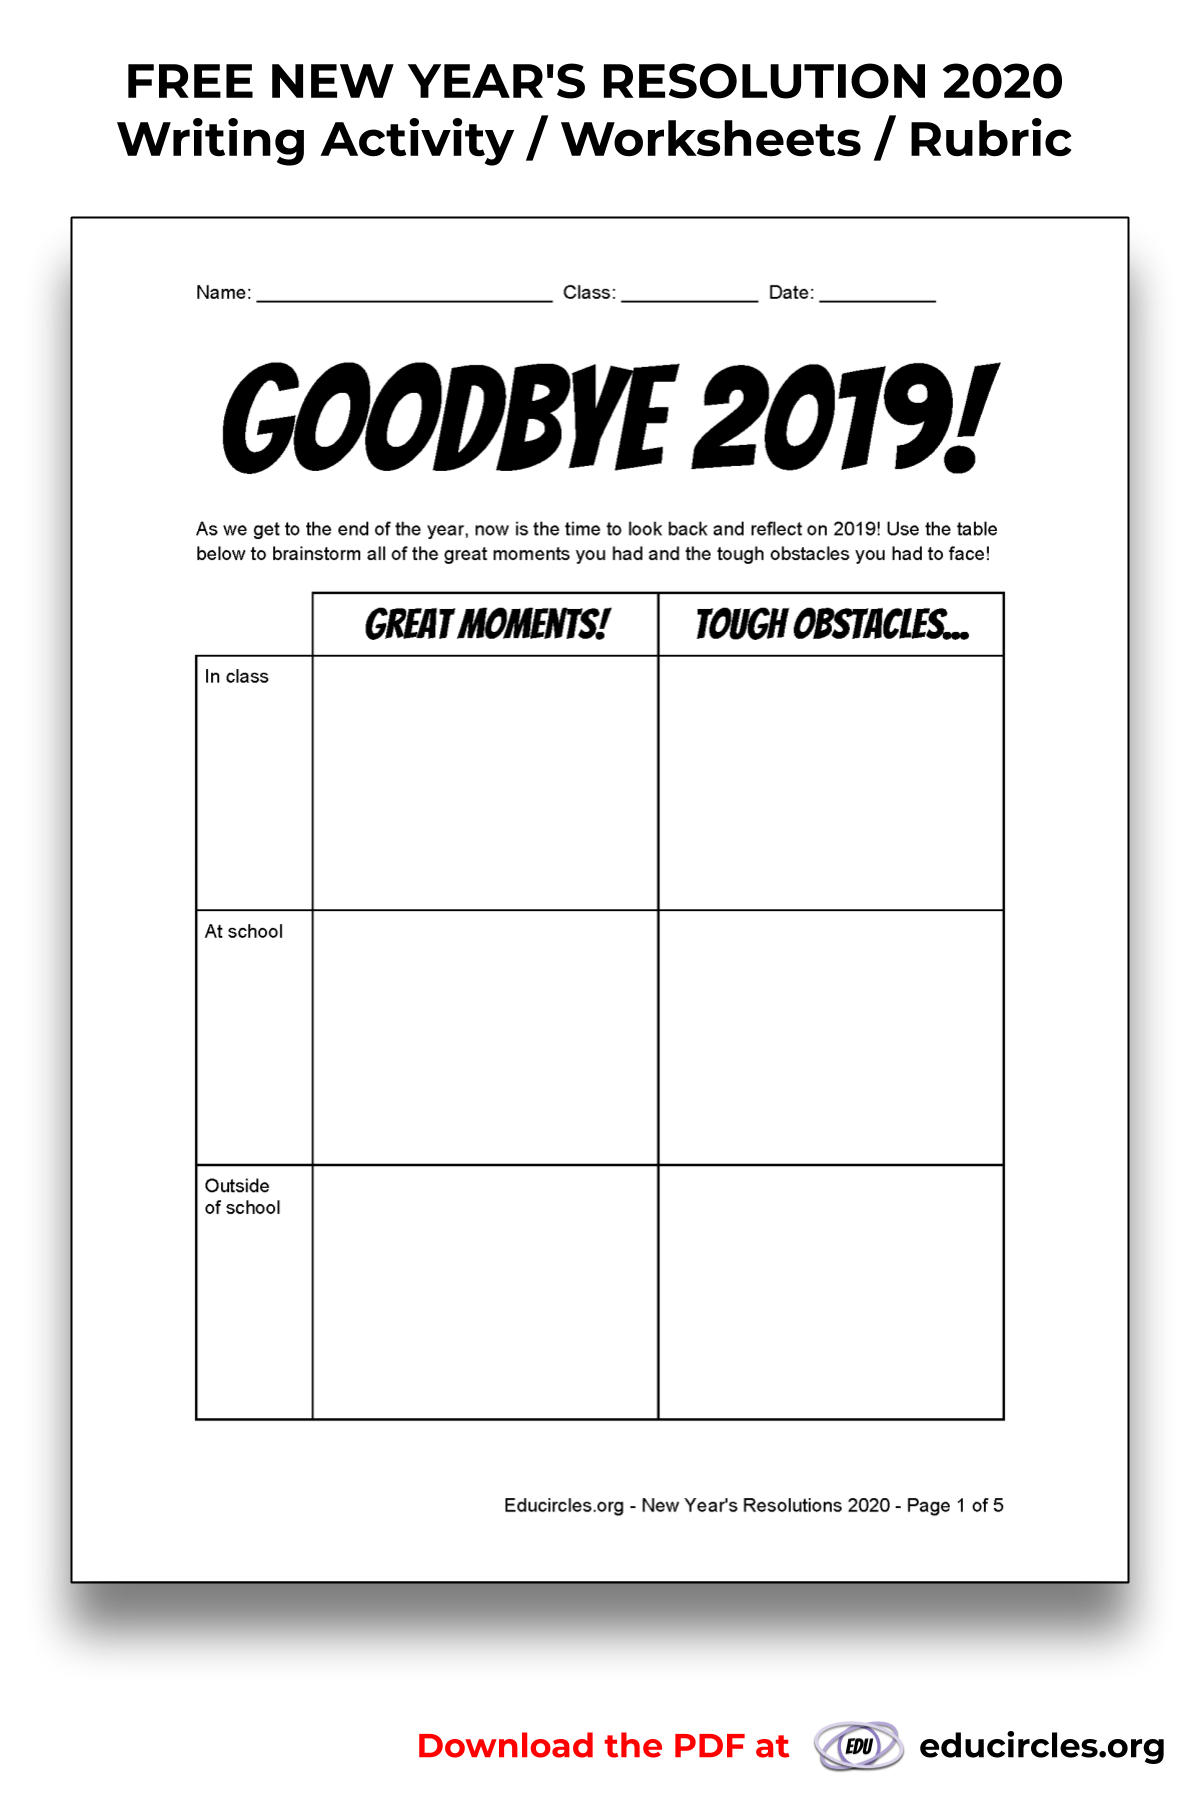 FREE NEW YEAR'S RESOLUTION 2020 Writing Activity ...